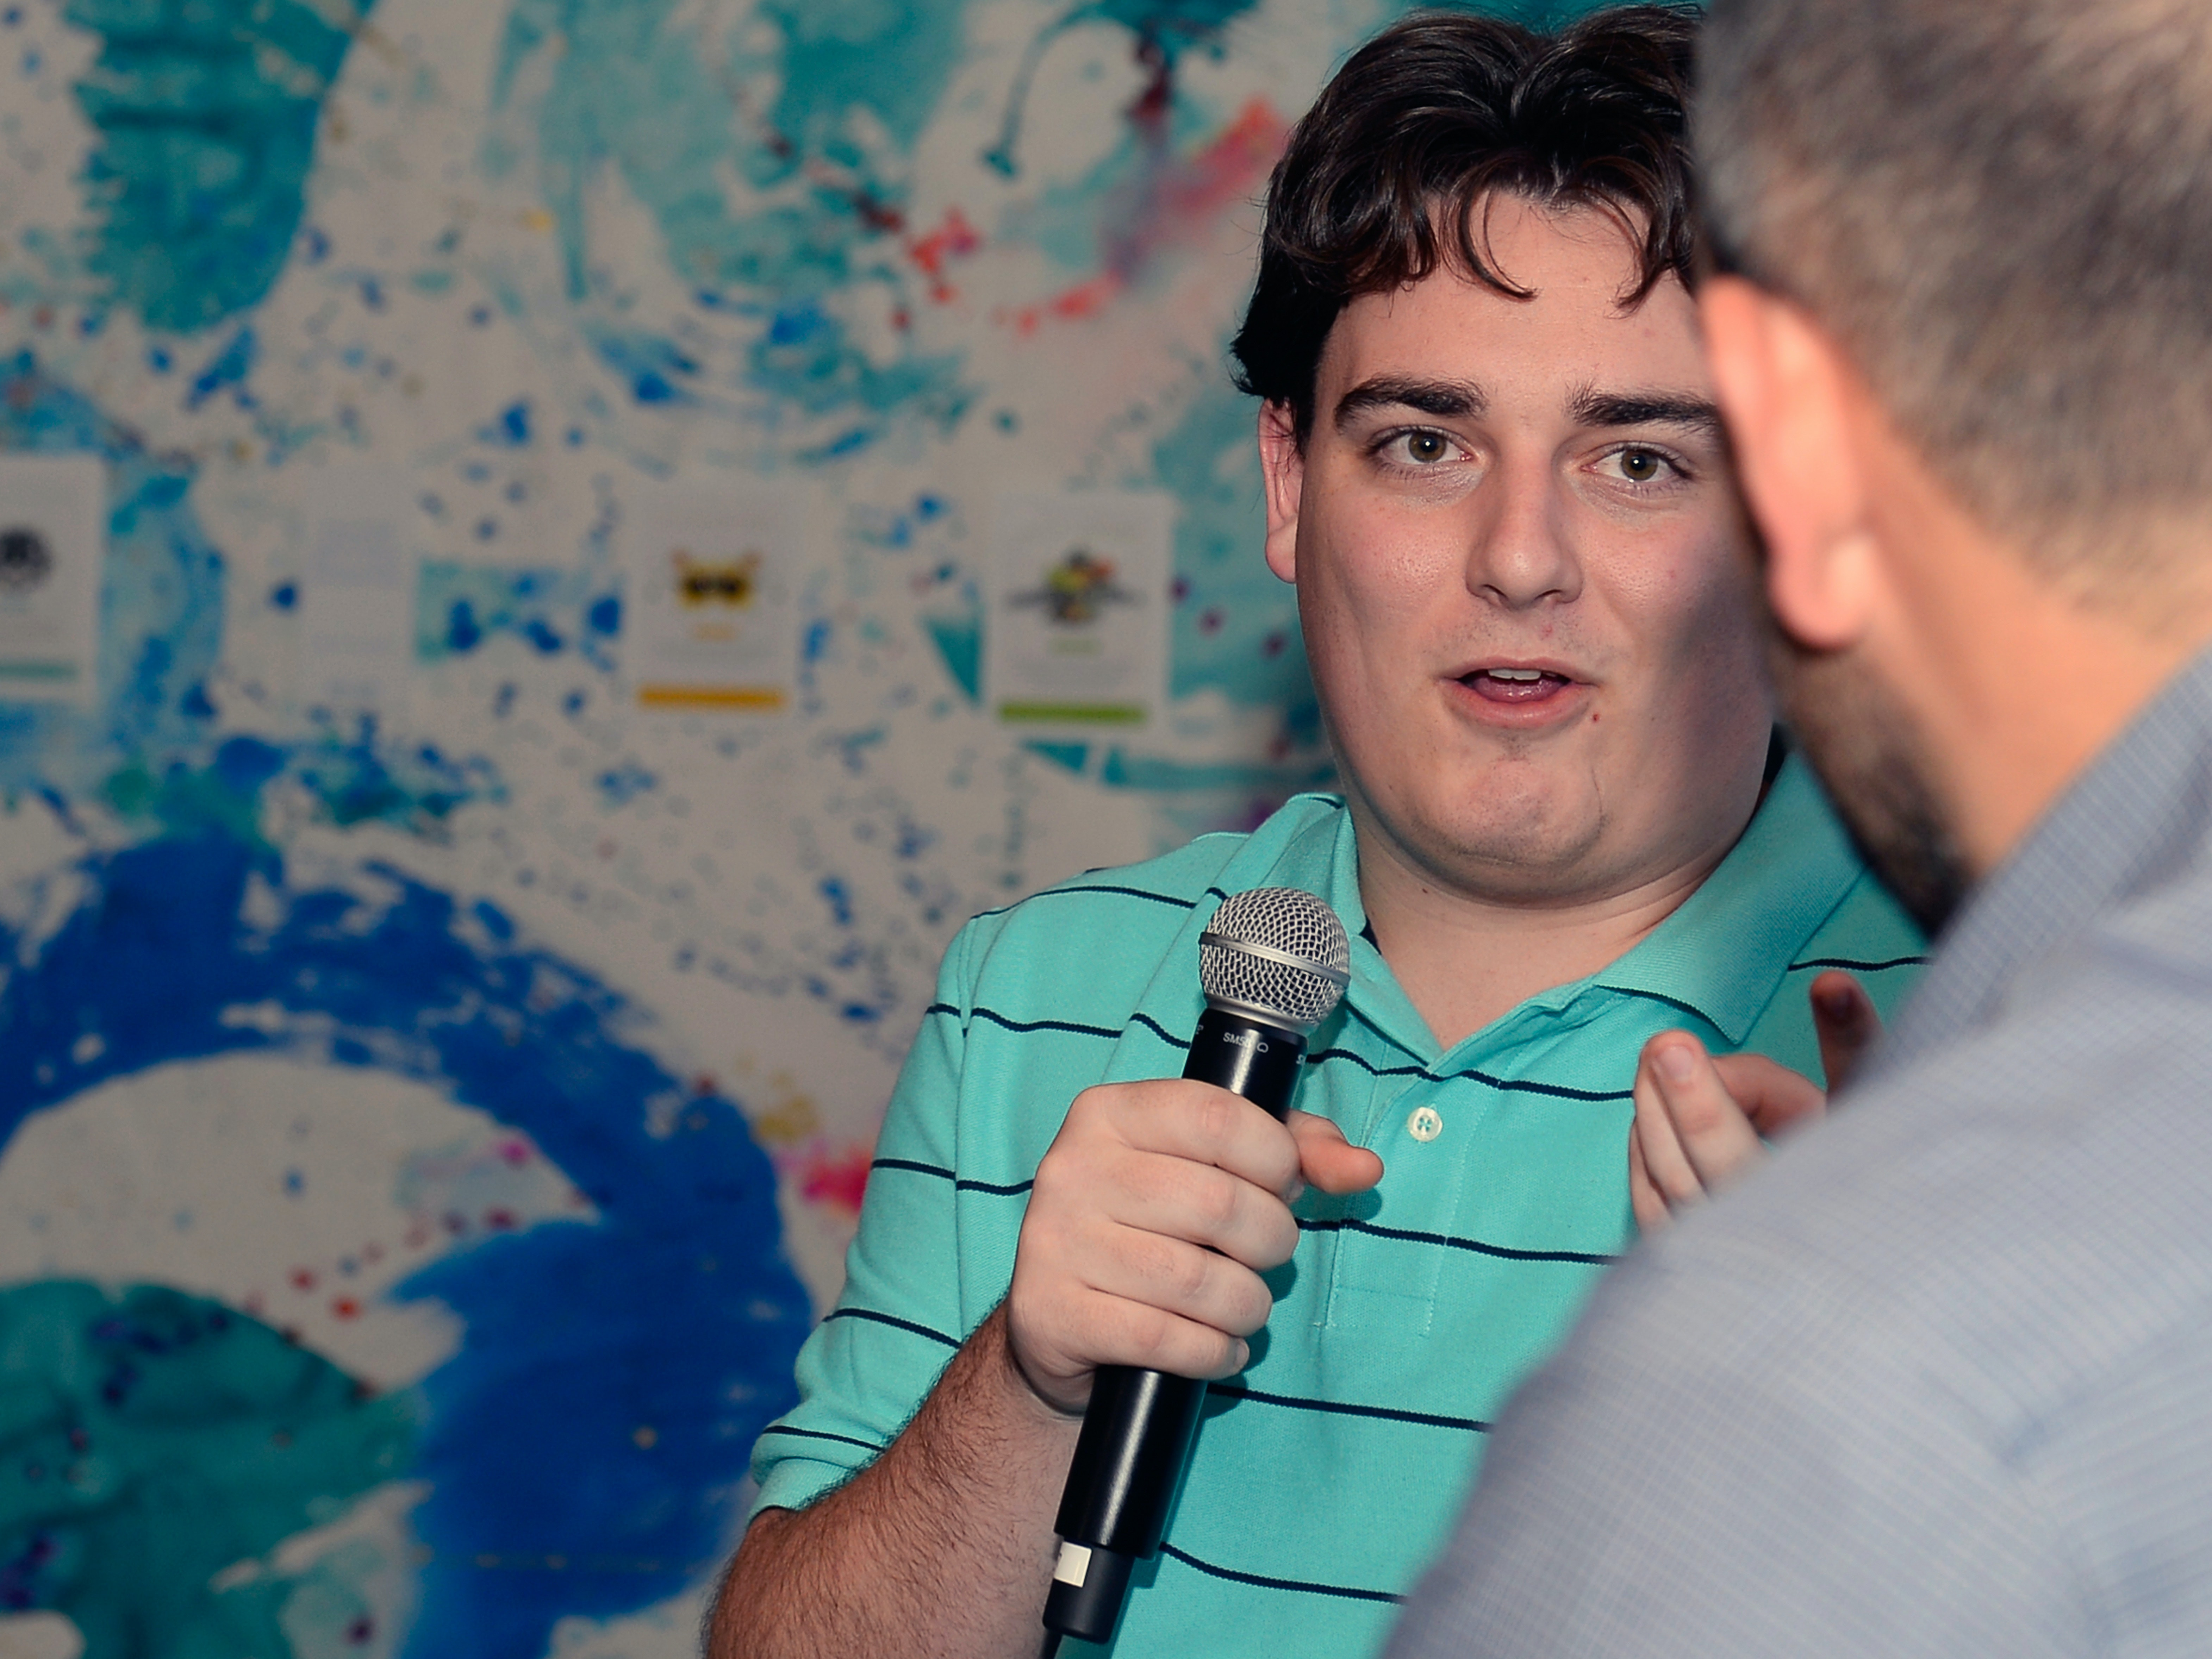 LAS VEGAS, NV - JANUARY 07:  Oculus Founder Palmer Luckey speaks during an intimate Dell dinner at Yardbird at The Venetian Las Vegas on January 7, 2016 in Las Vegas, Nevada. Virtual reality is the top trending topic during CES 2016, Luckey discussed Oculus's role in the emerging VR market and partnership with Alienware.  (Photo by Bryan Steffy/Getty Images for Dell)